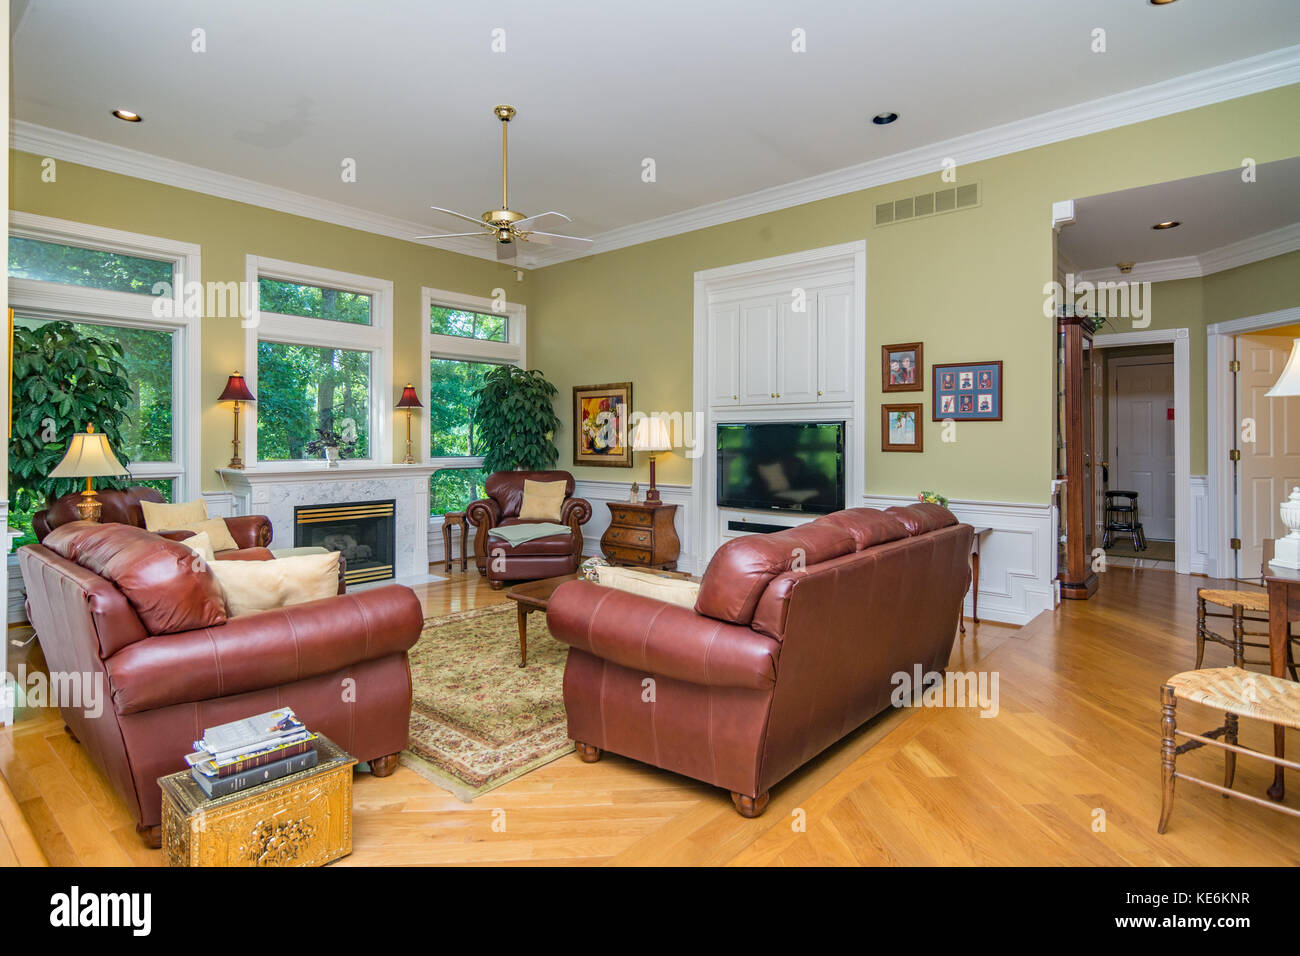 Living room interior of middle class American home in ...